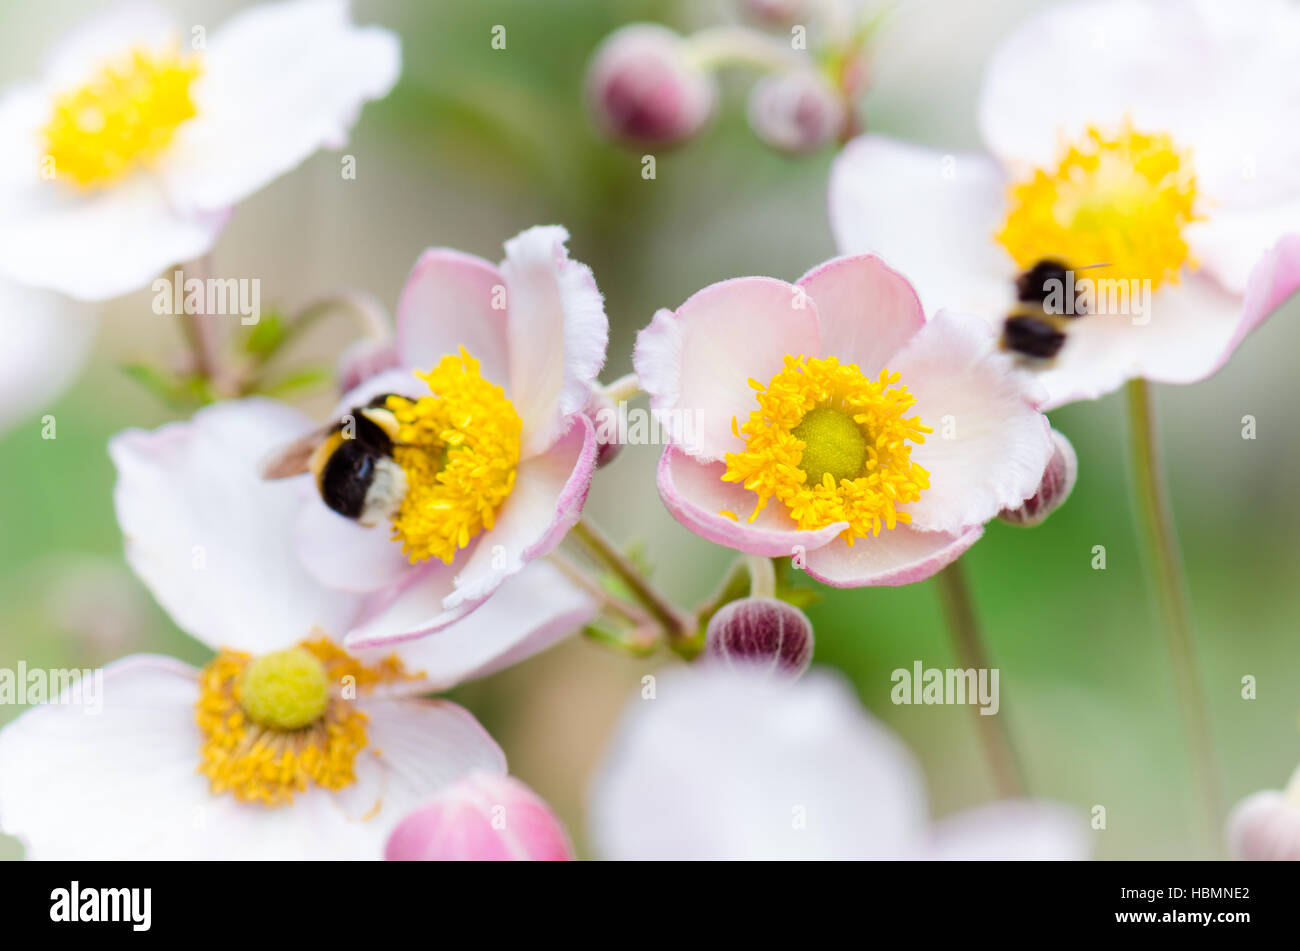 a bee collects pollen from flower, close-up Stock Photo